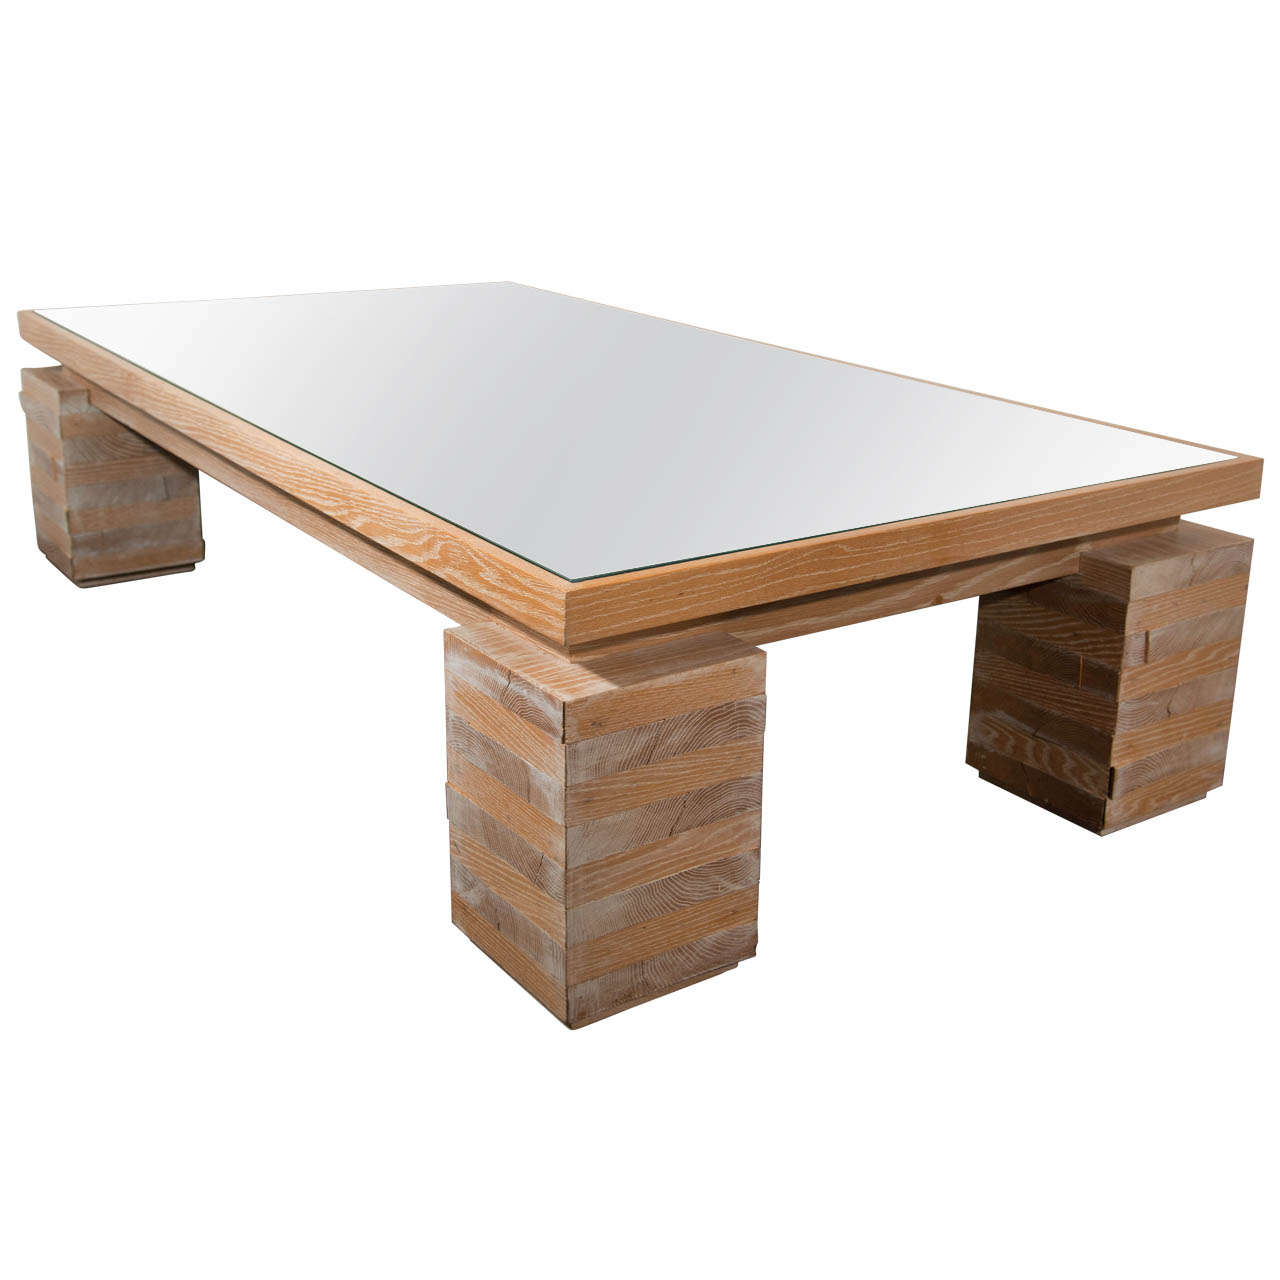 Monumental Limed Oak Coffee Table in the Manner of Paul Dupré-Lafon